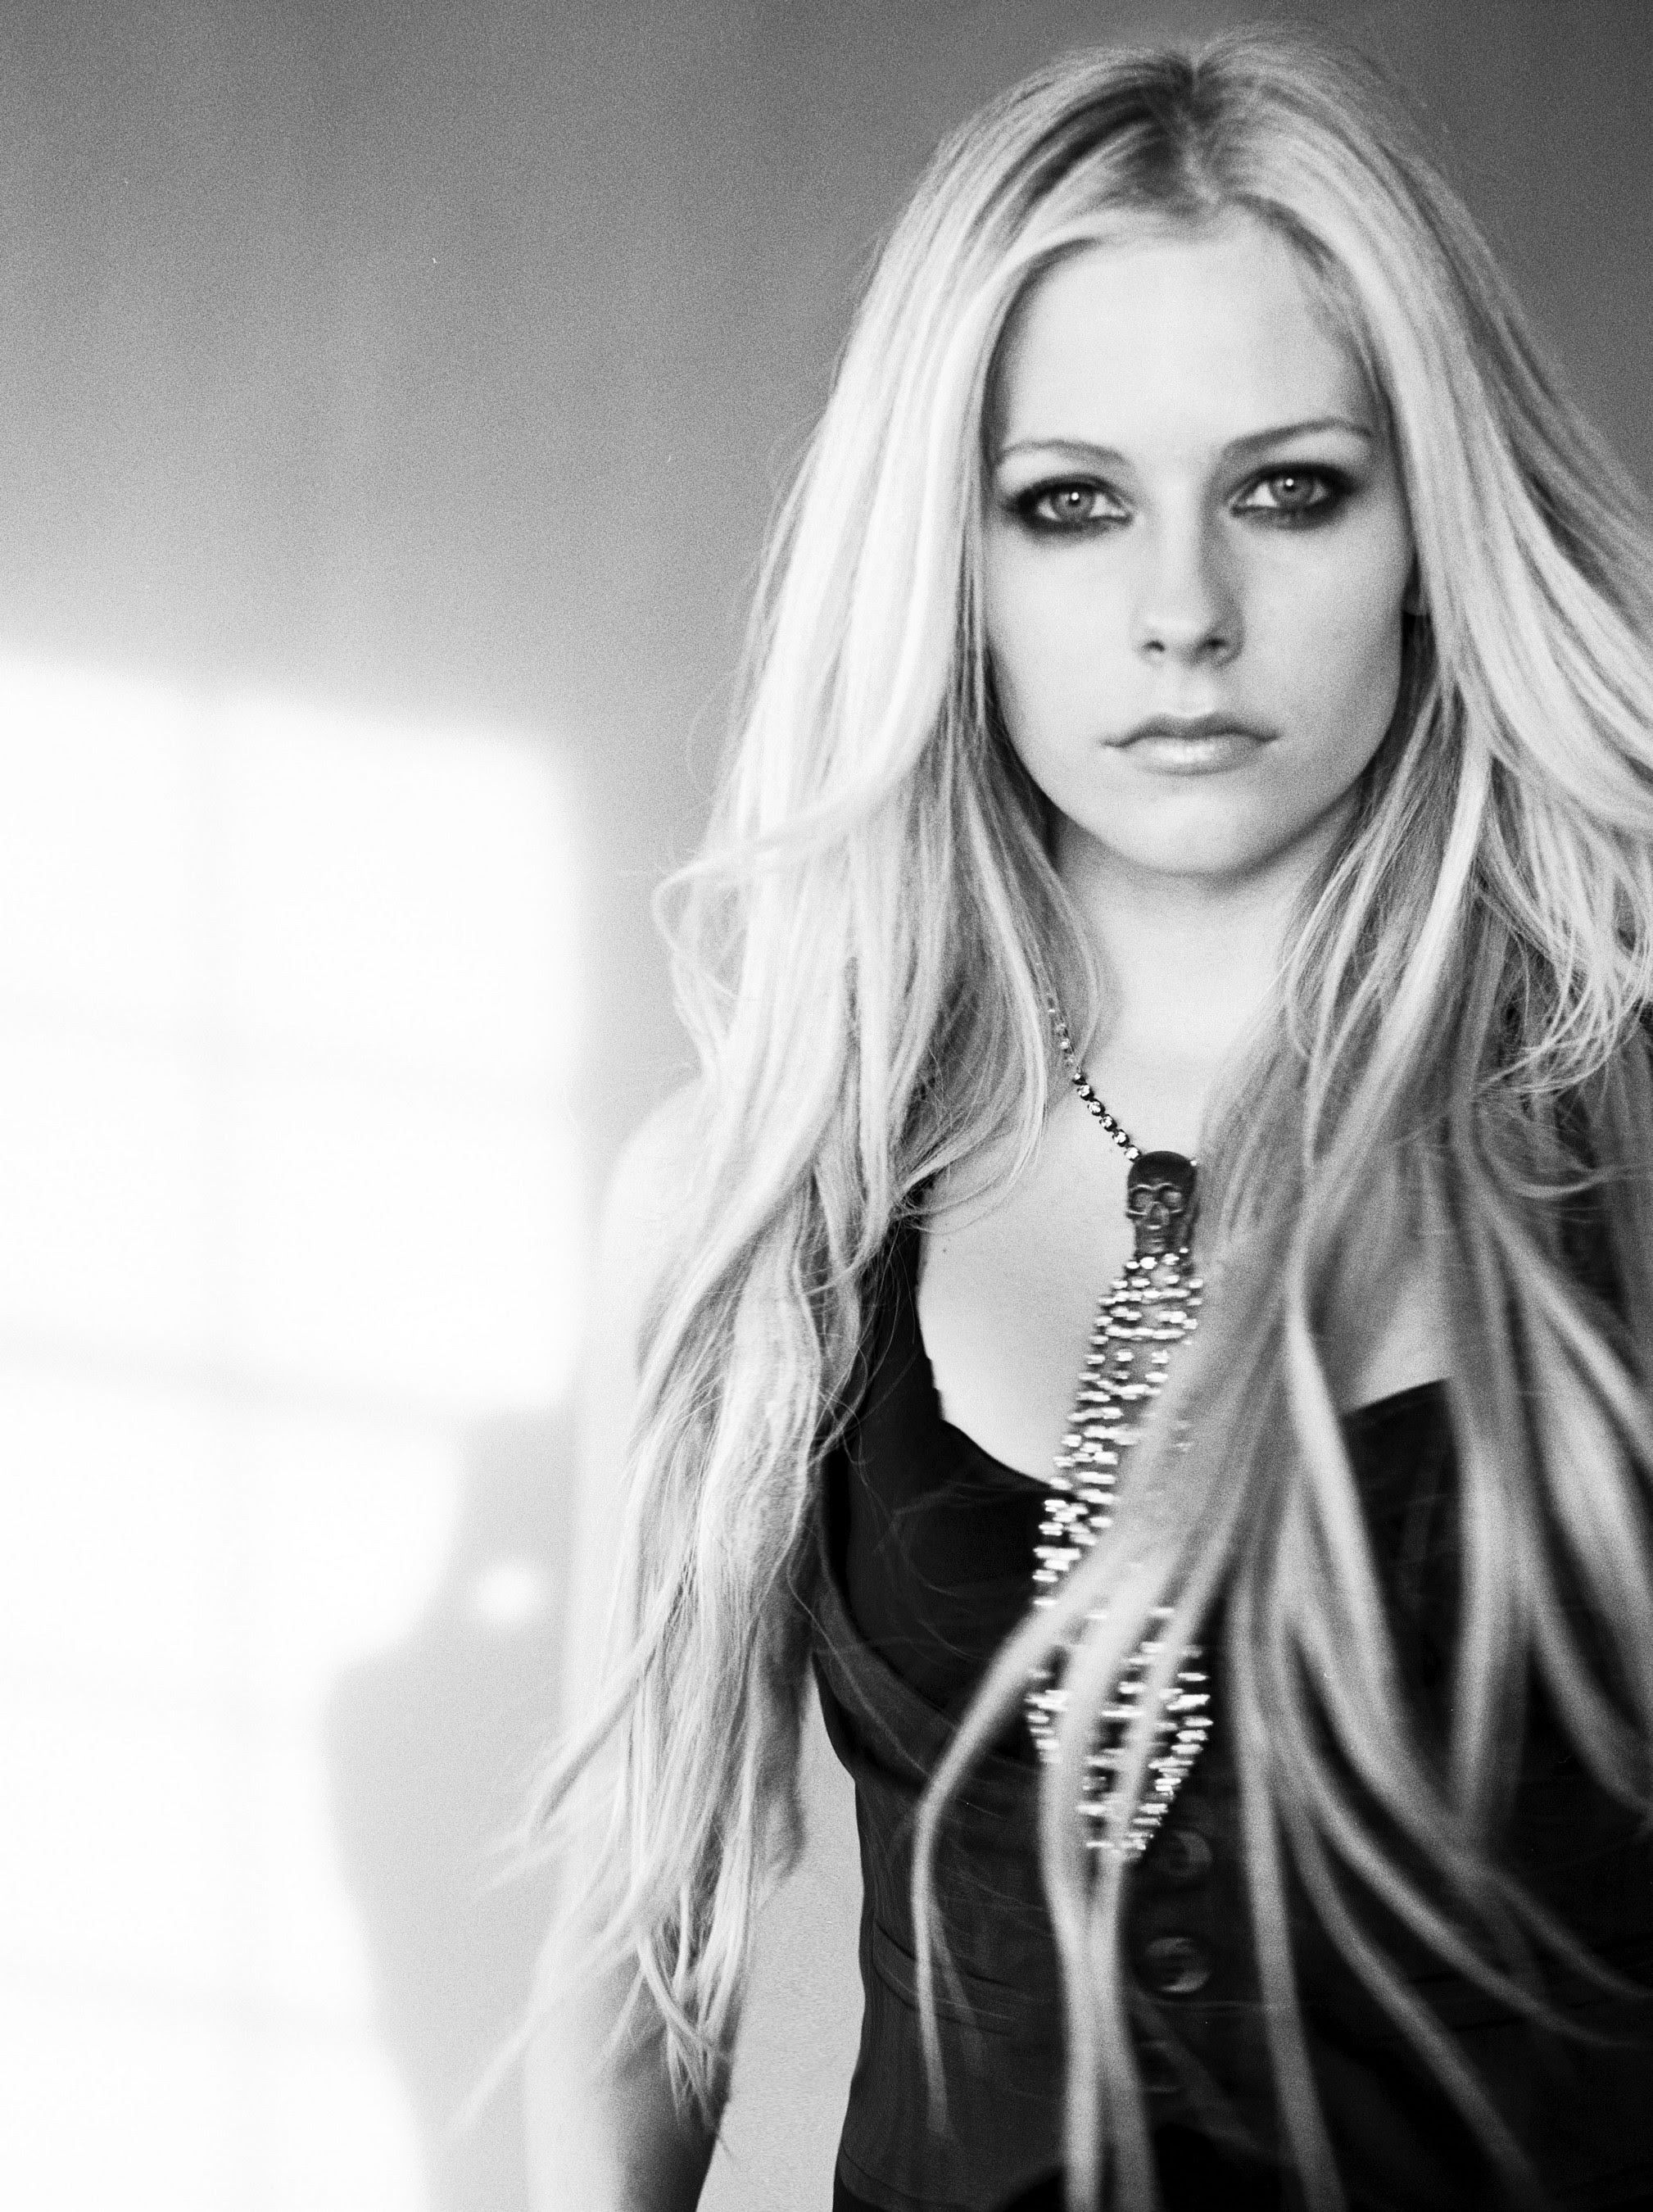 Celebrity Avril Lavigne 壁紙画像 Pchdwallpaper Com